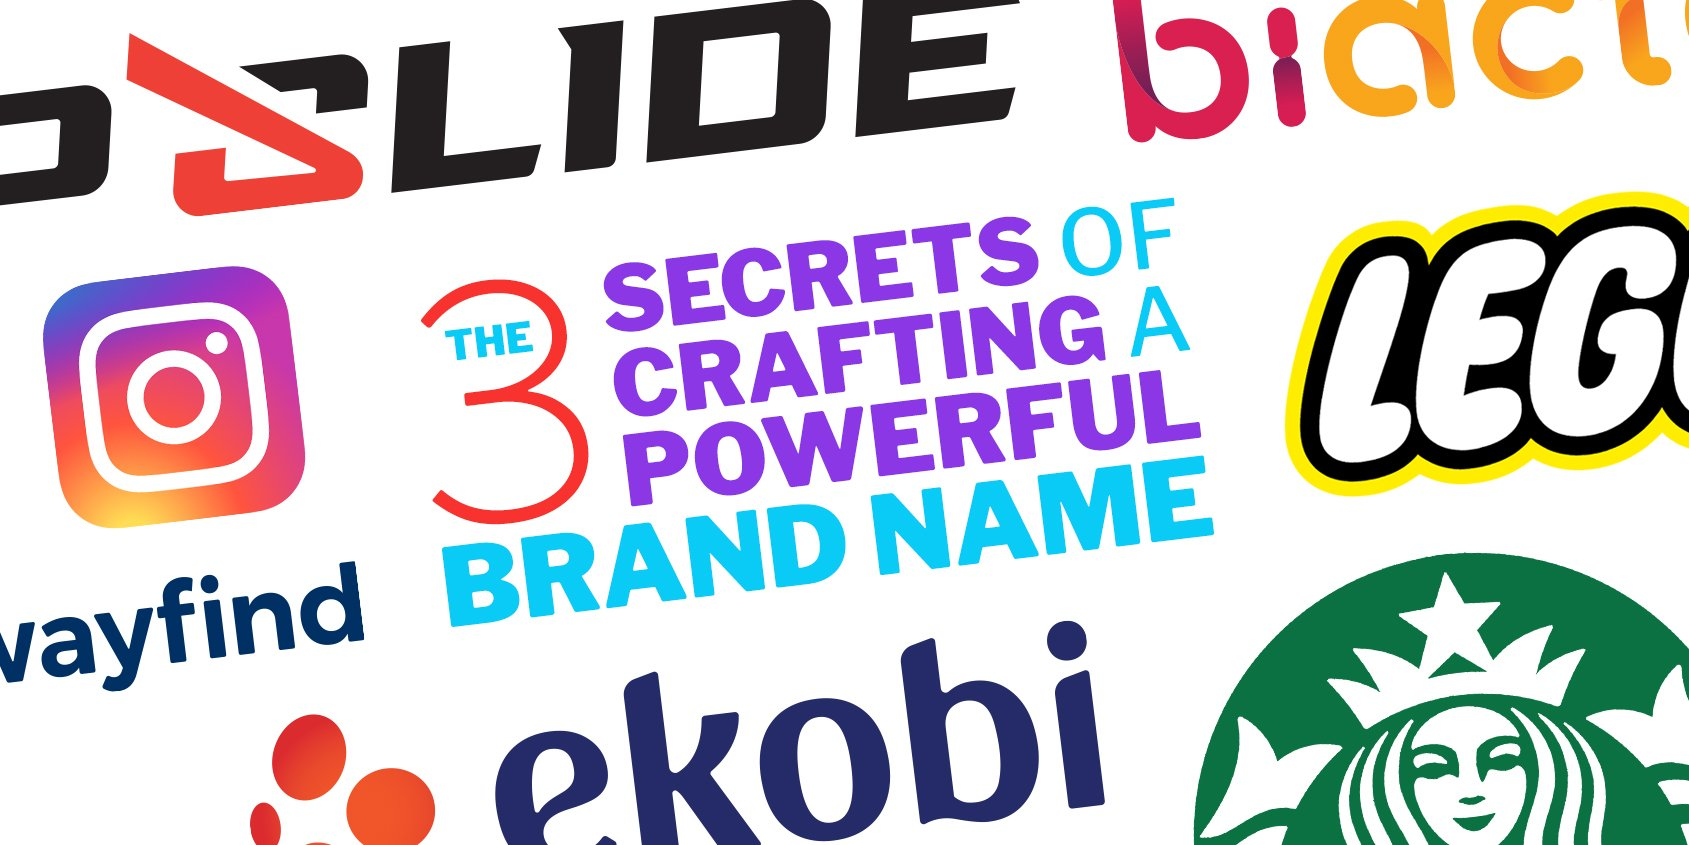 The 3 Secrets of Crafting a Powerful Brand Name